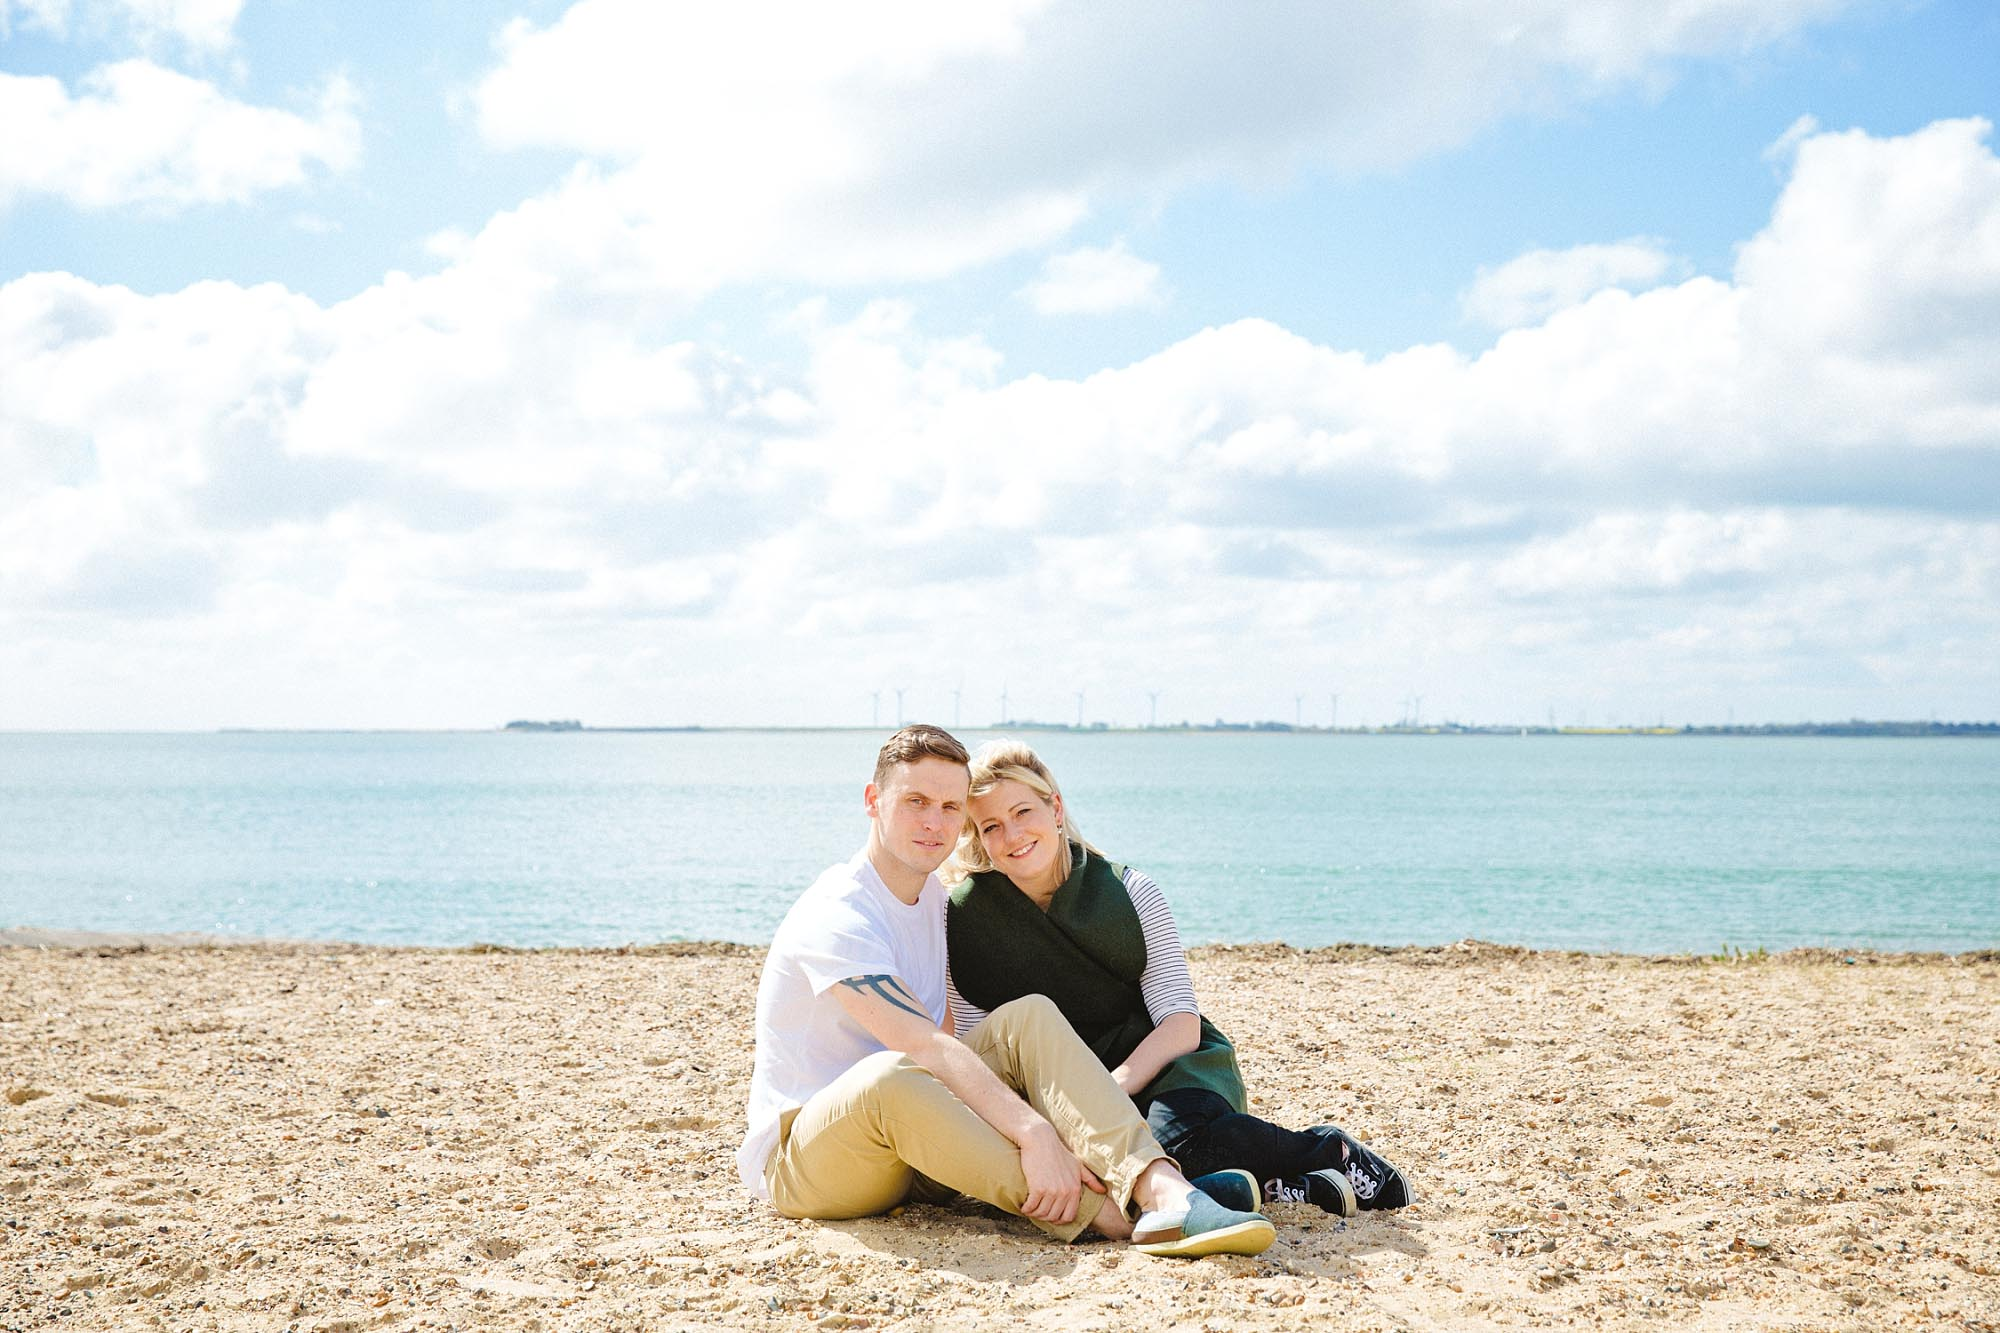 Mersea-Island-Beach-Engagement_0027.jpg